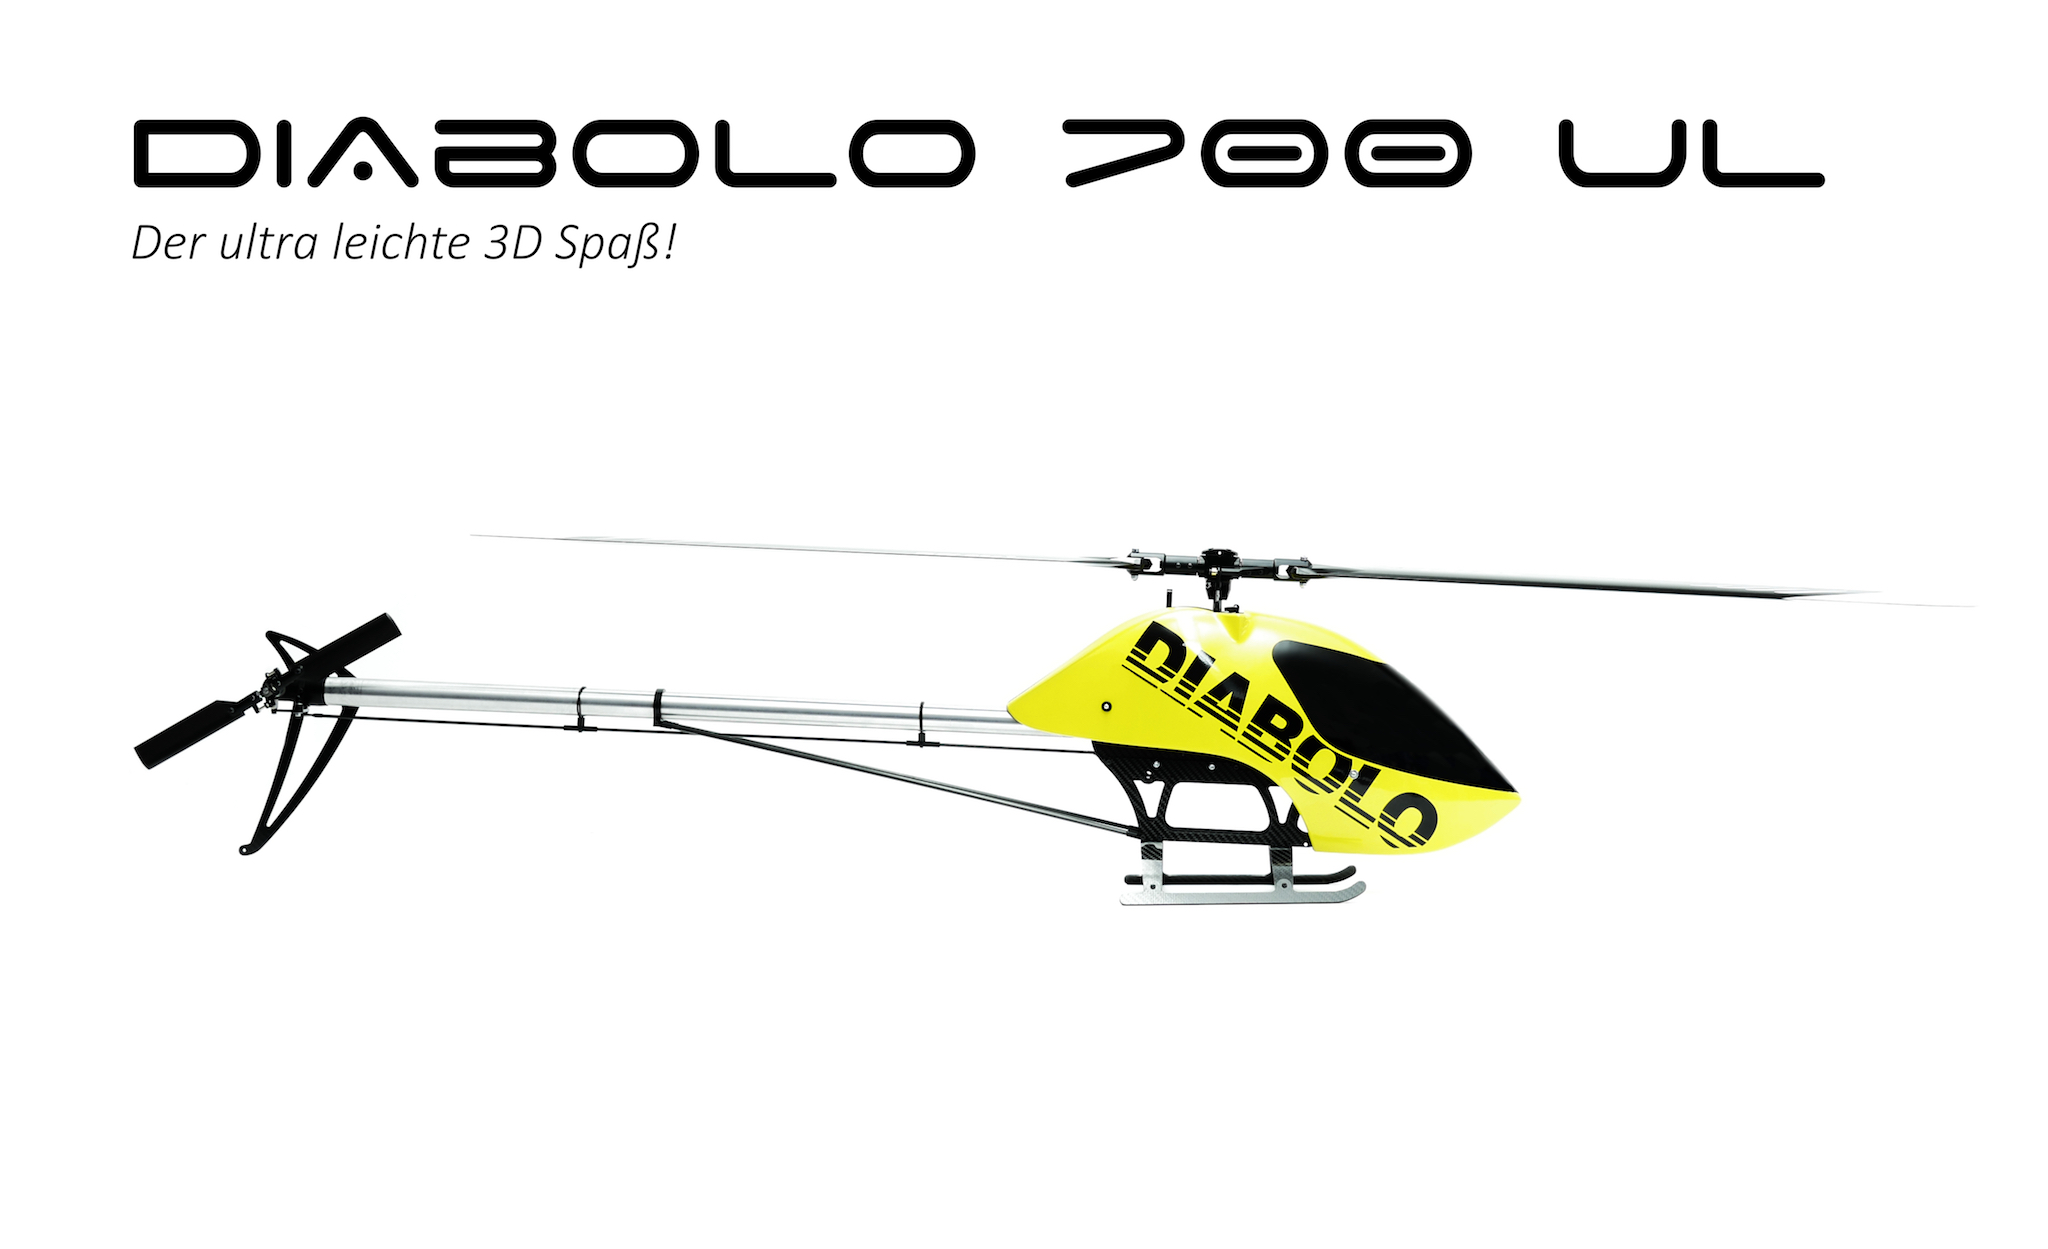 Diabolo 700 Ultra Light